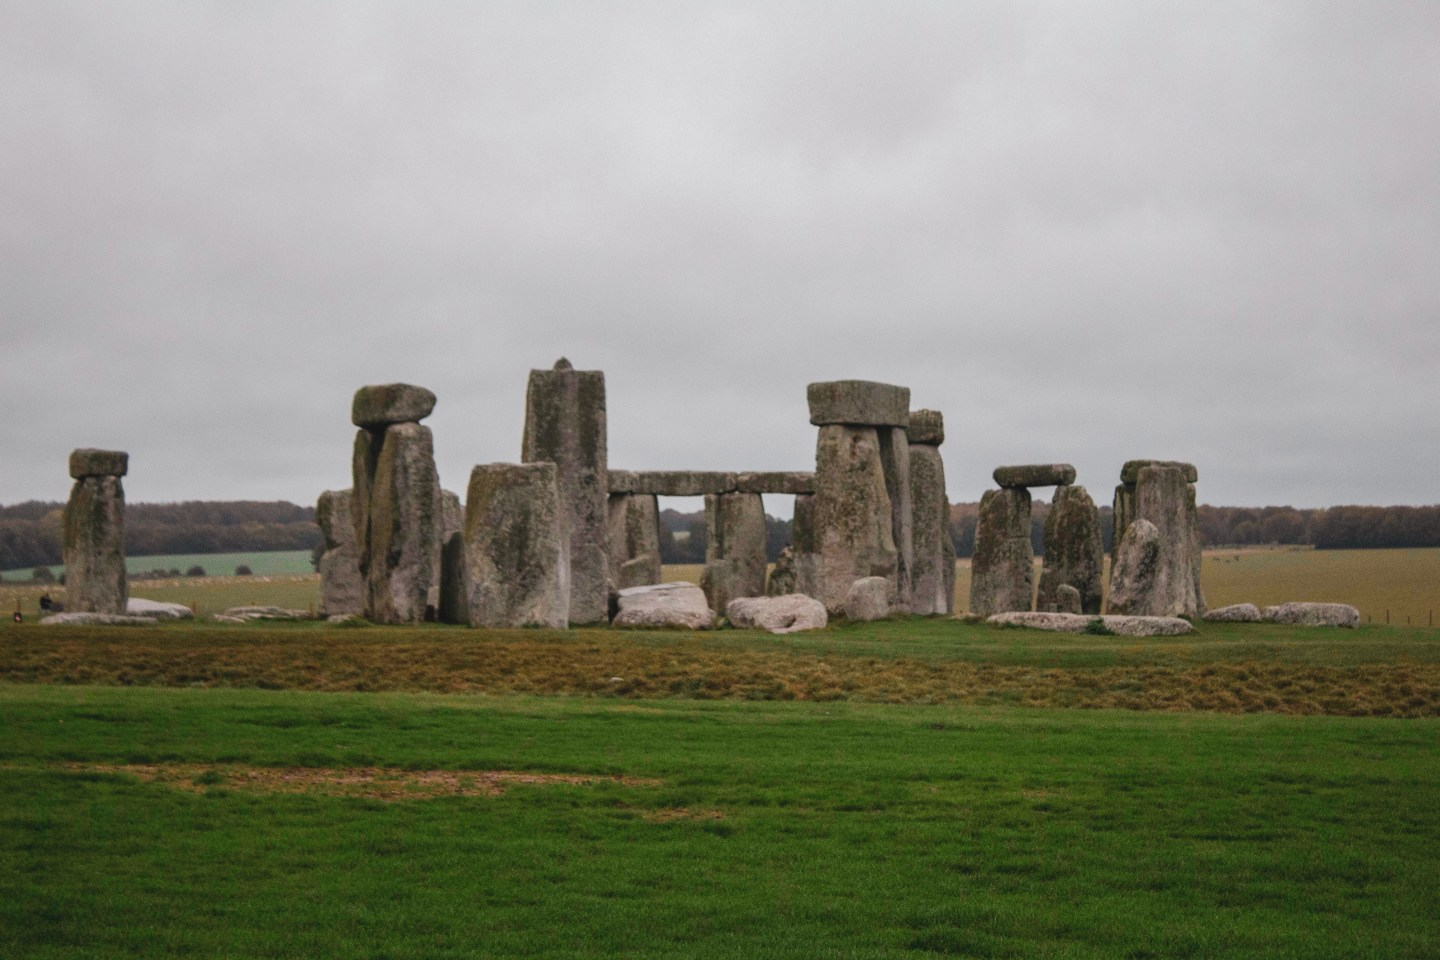 Stonehenge on a cloudy day with green fields surrounding